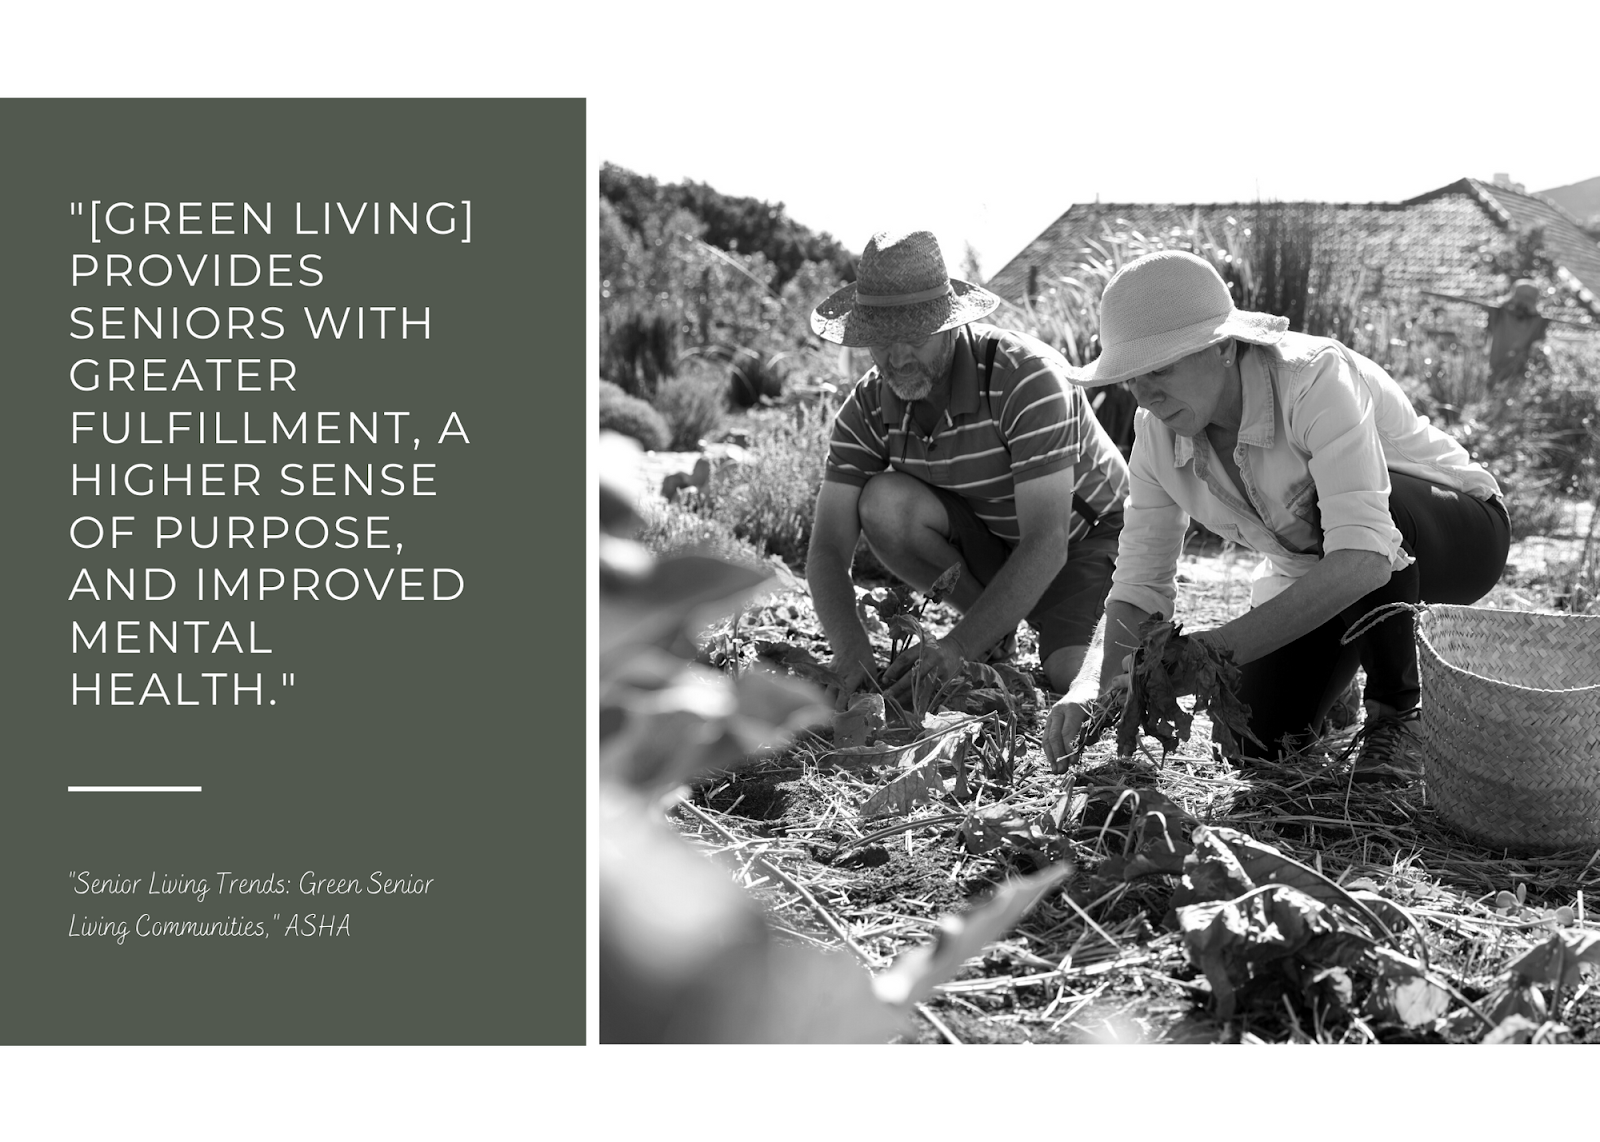 green living provides seniors with a sustainable future and alternatives for sustainable living